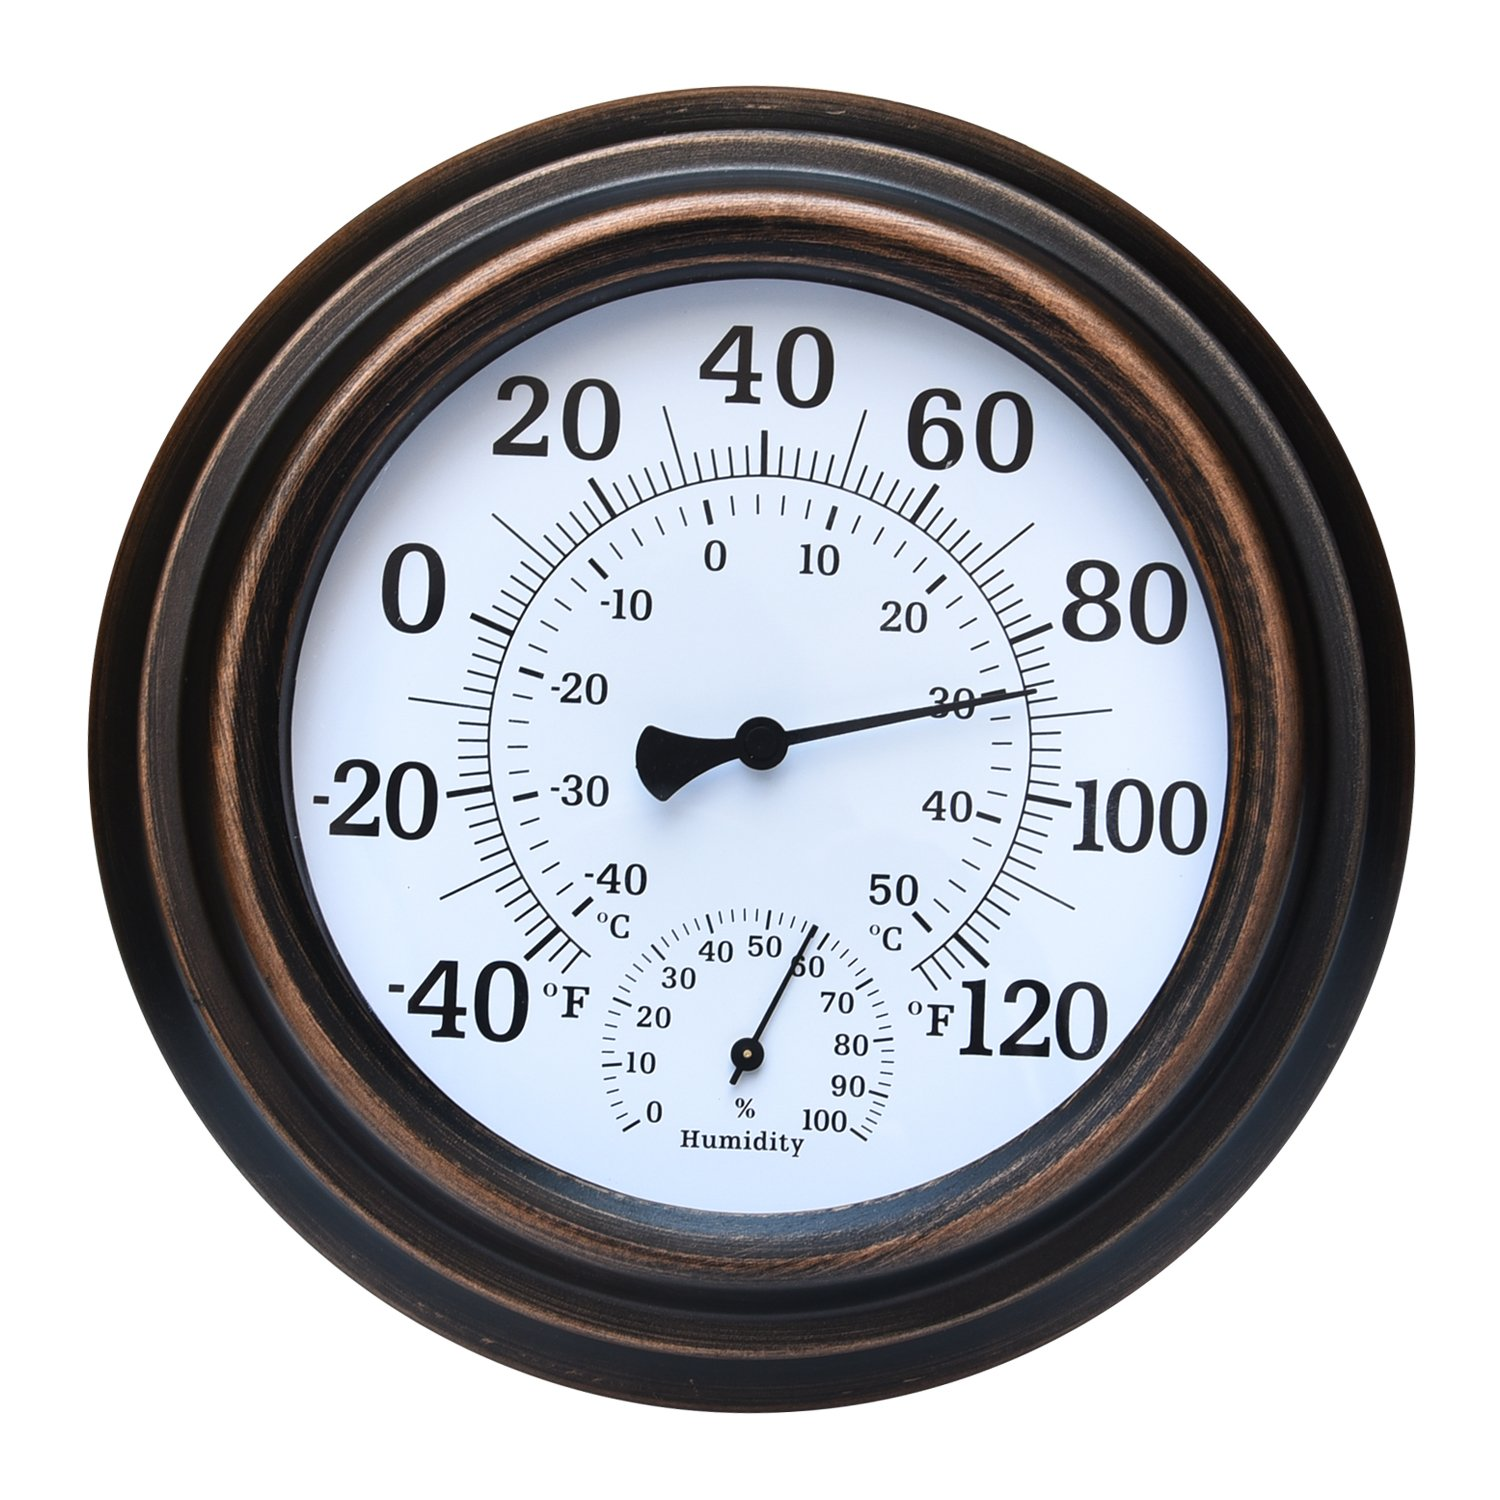 MIHE 8'' Metal Decorative Indoor/Outdoor Thermometer for Garden, Pool, Kitchen, Patio Wall Hygrometer Thermometer(Bronze)